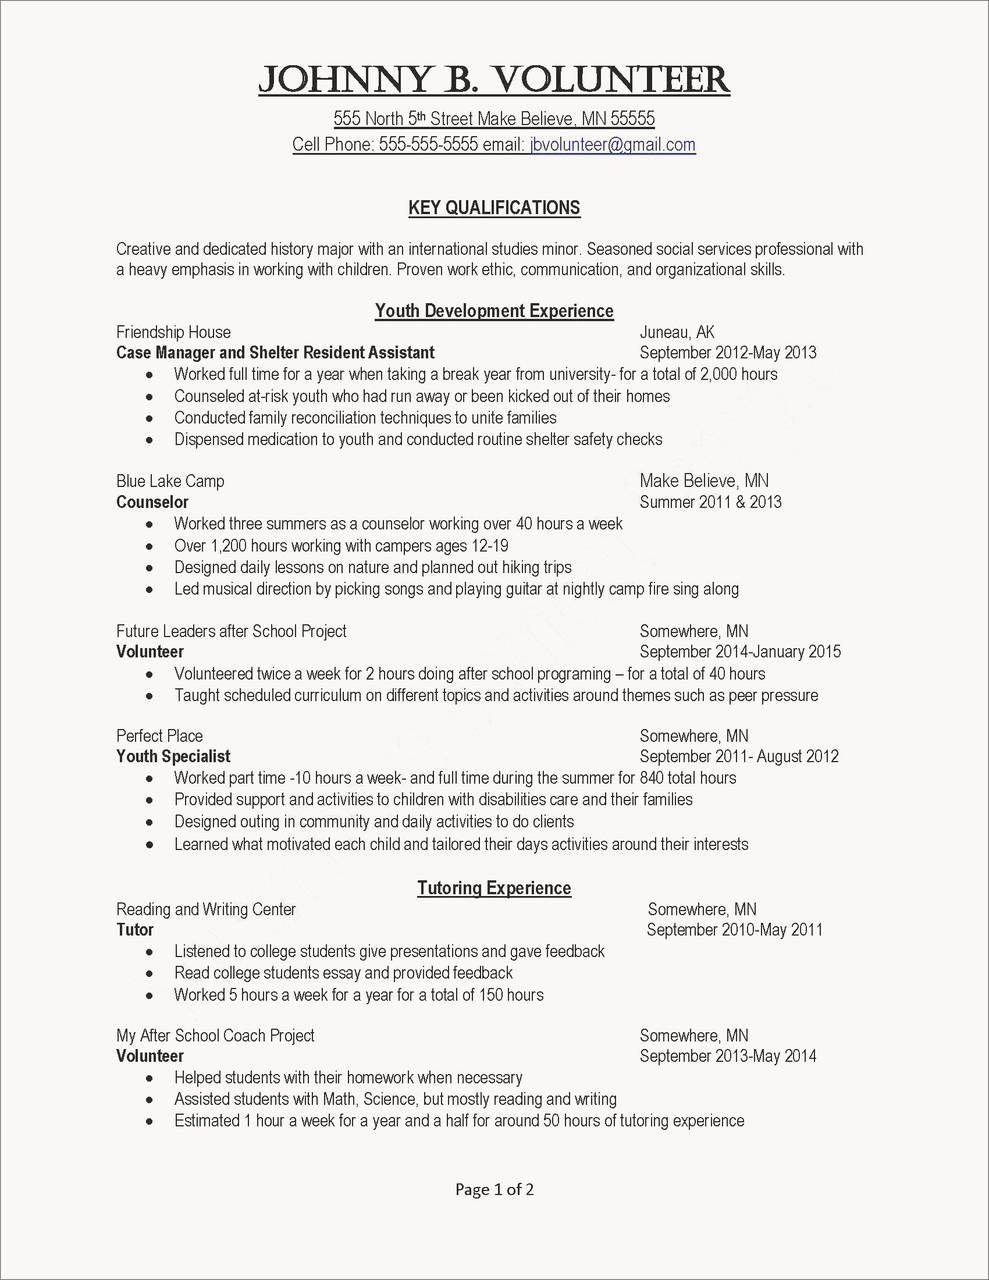 Academic Resume Template - Perfect Resume Example Luxury Resumes Skills Examples Resume